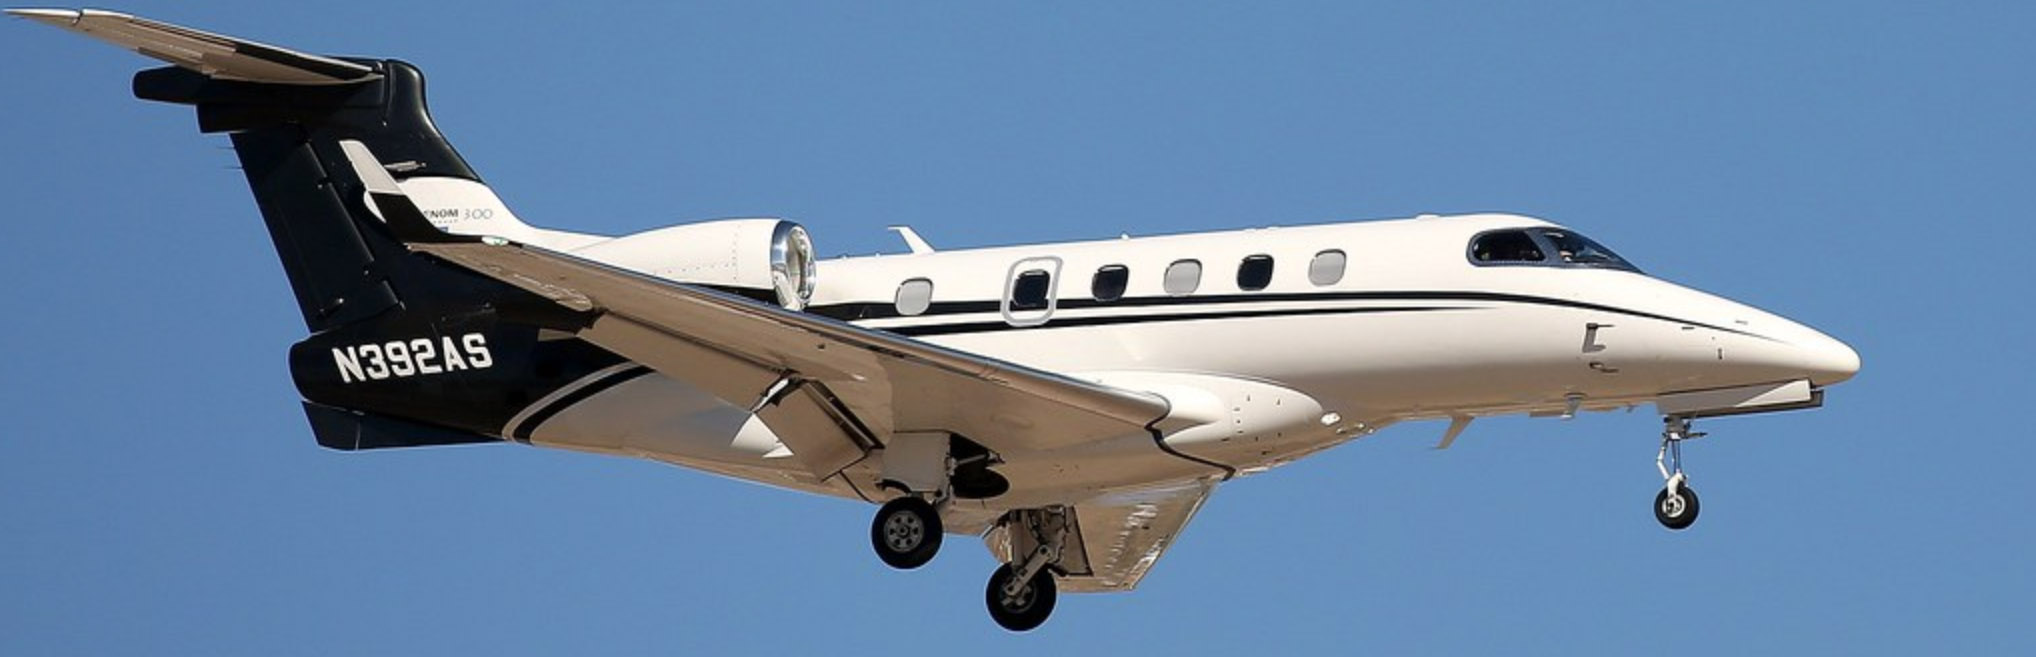 Airshare Embraer Phenom 300 on Final Approach